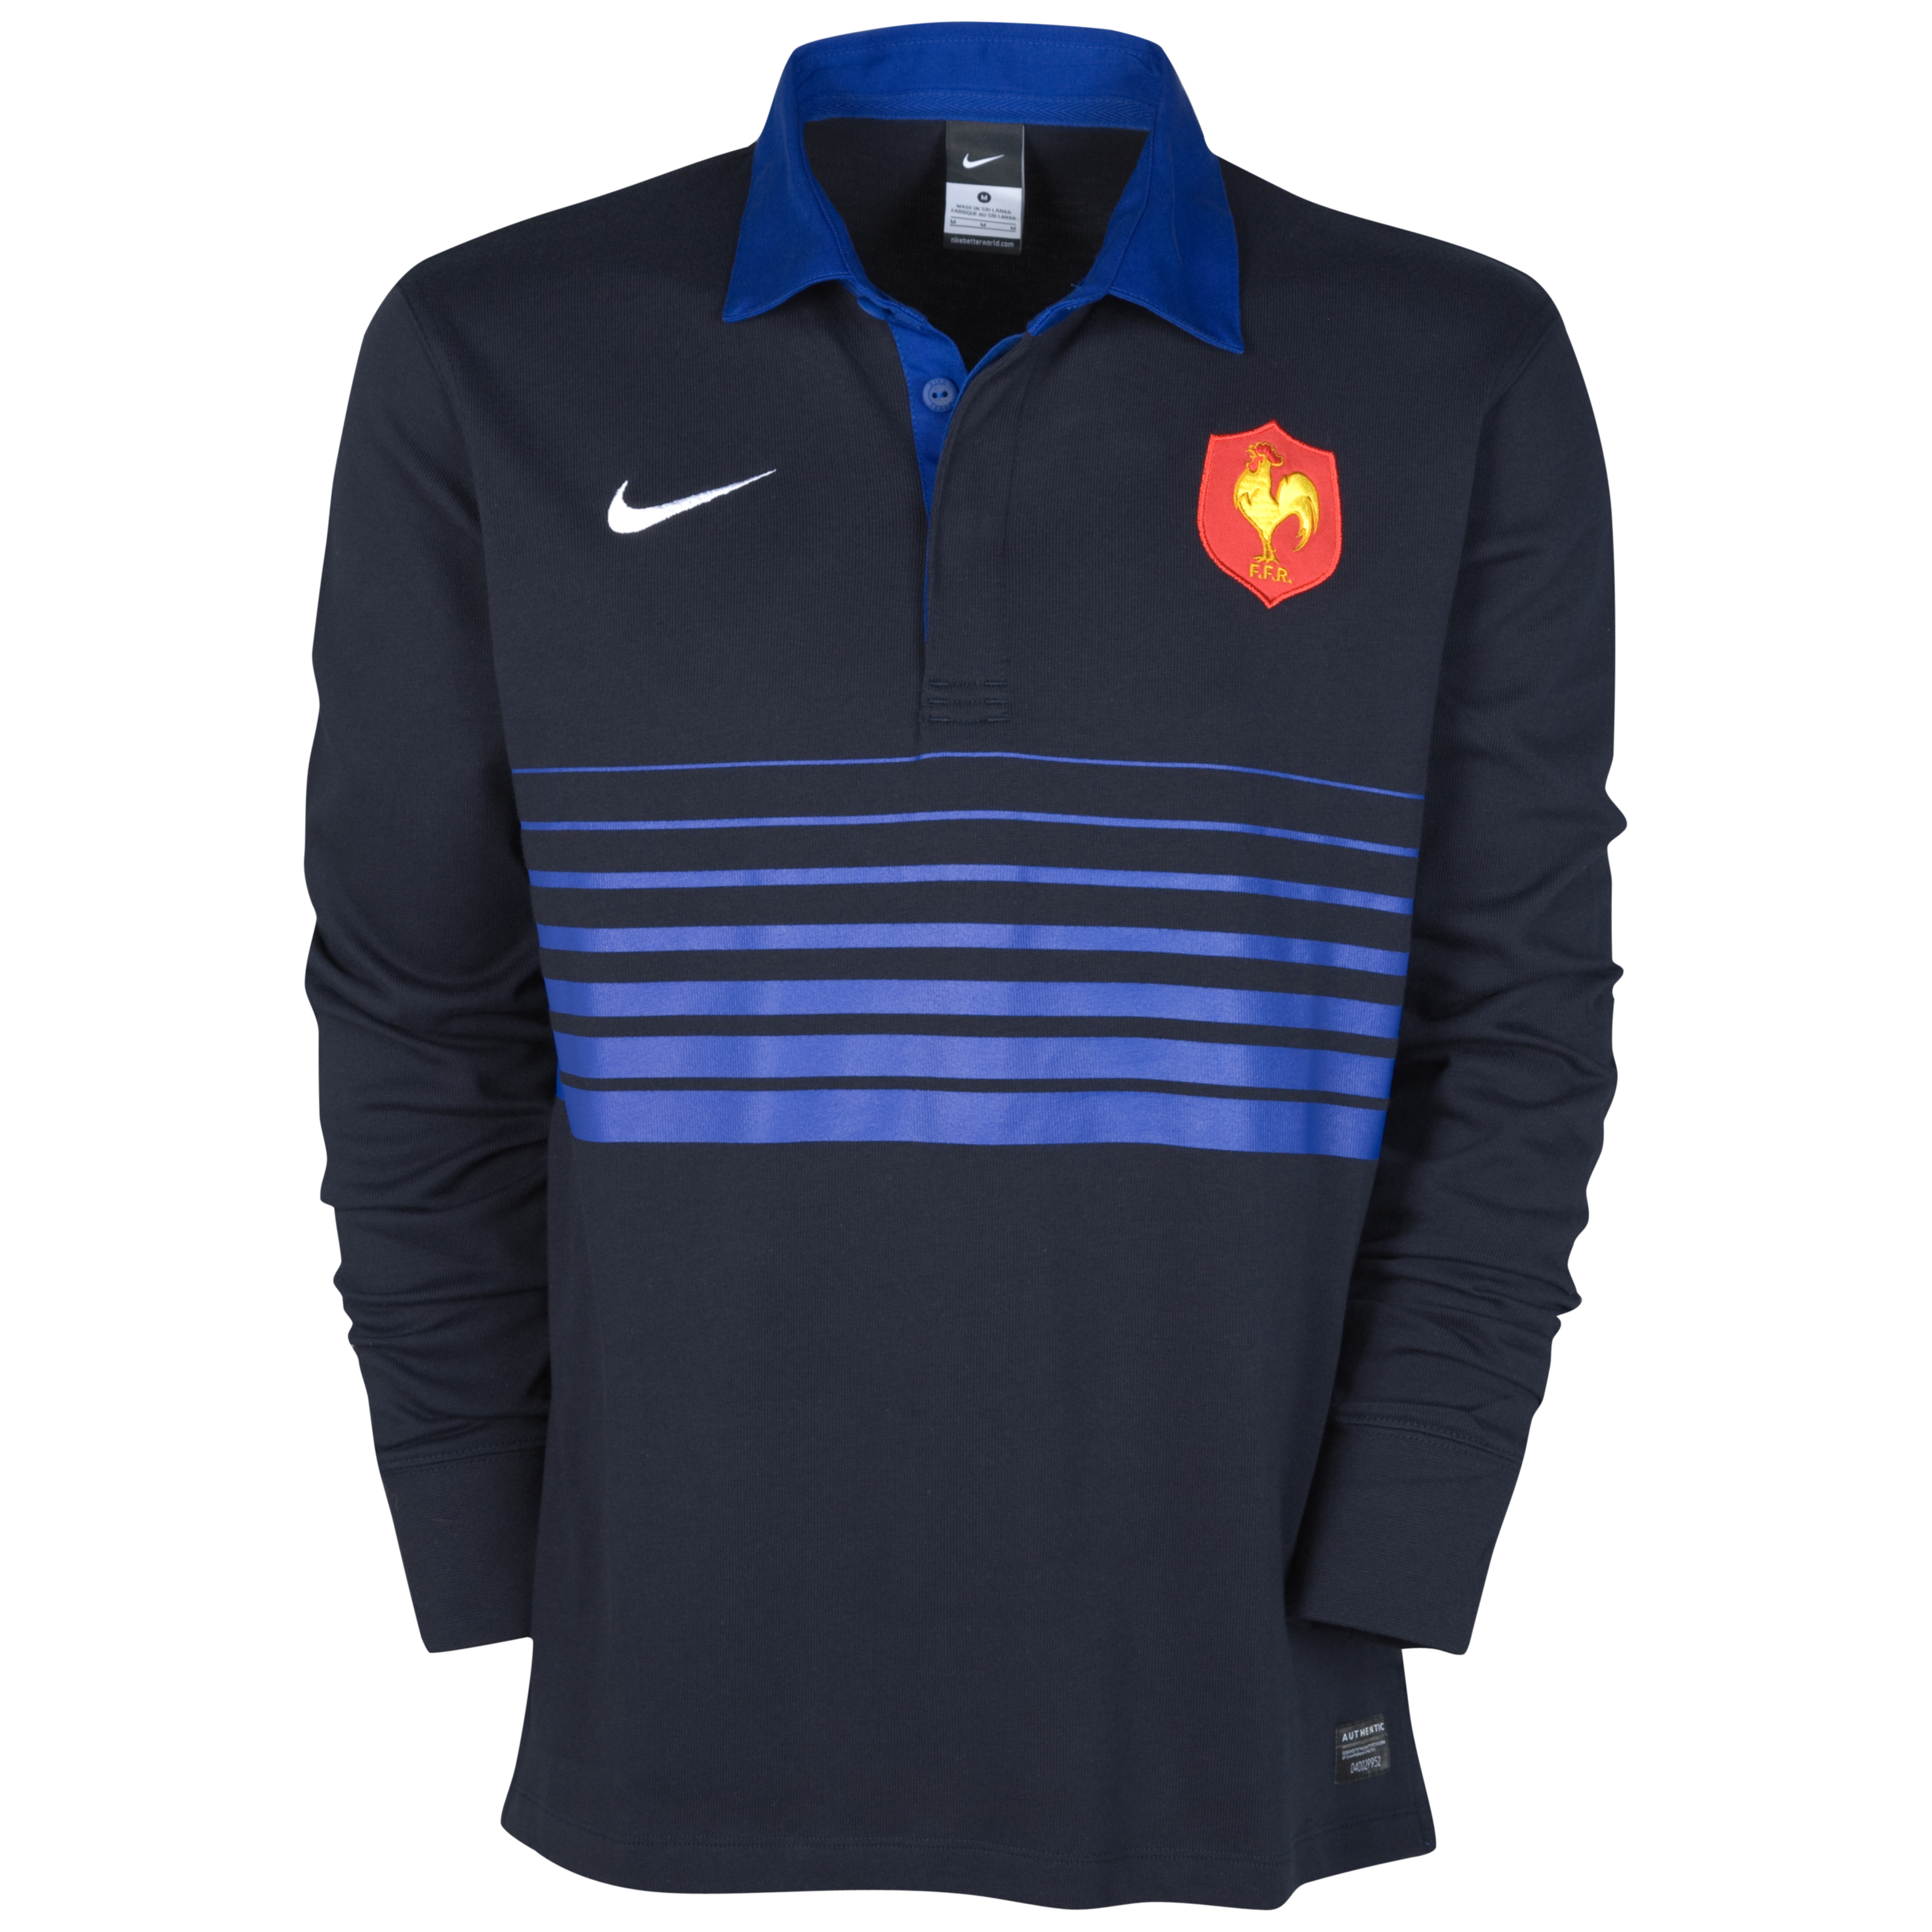 France Rugby Home Supporters Jersey 2011/12 - Long Sleeved. for 50€